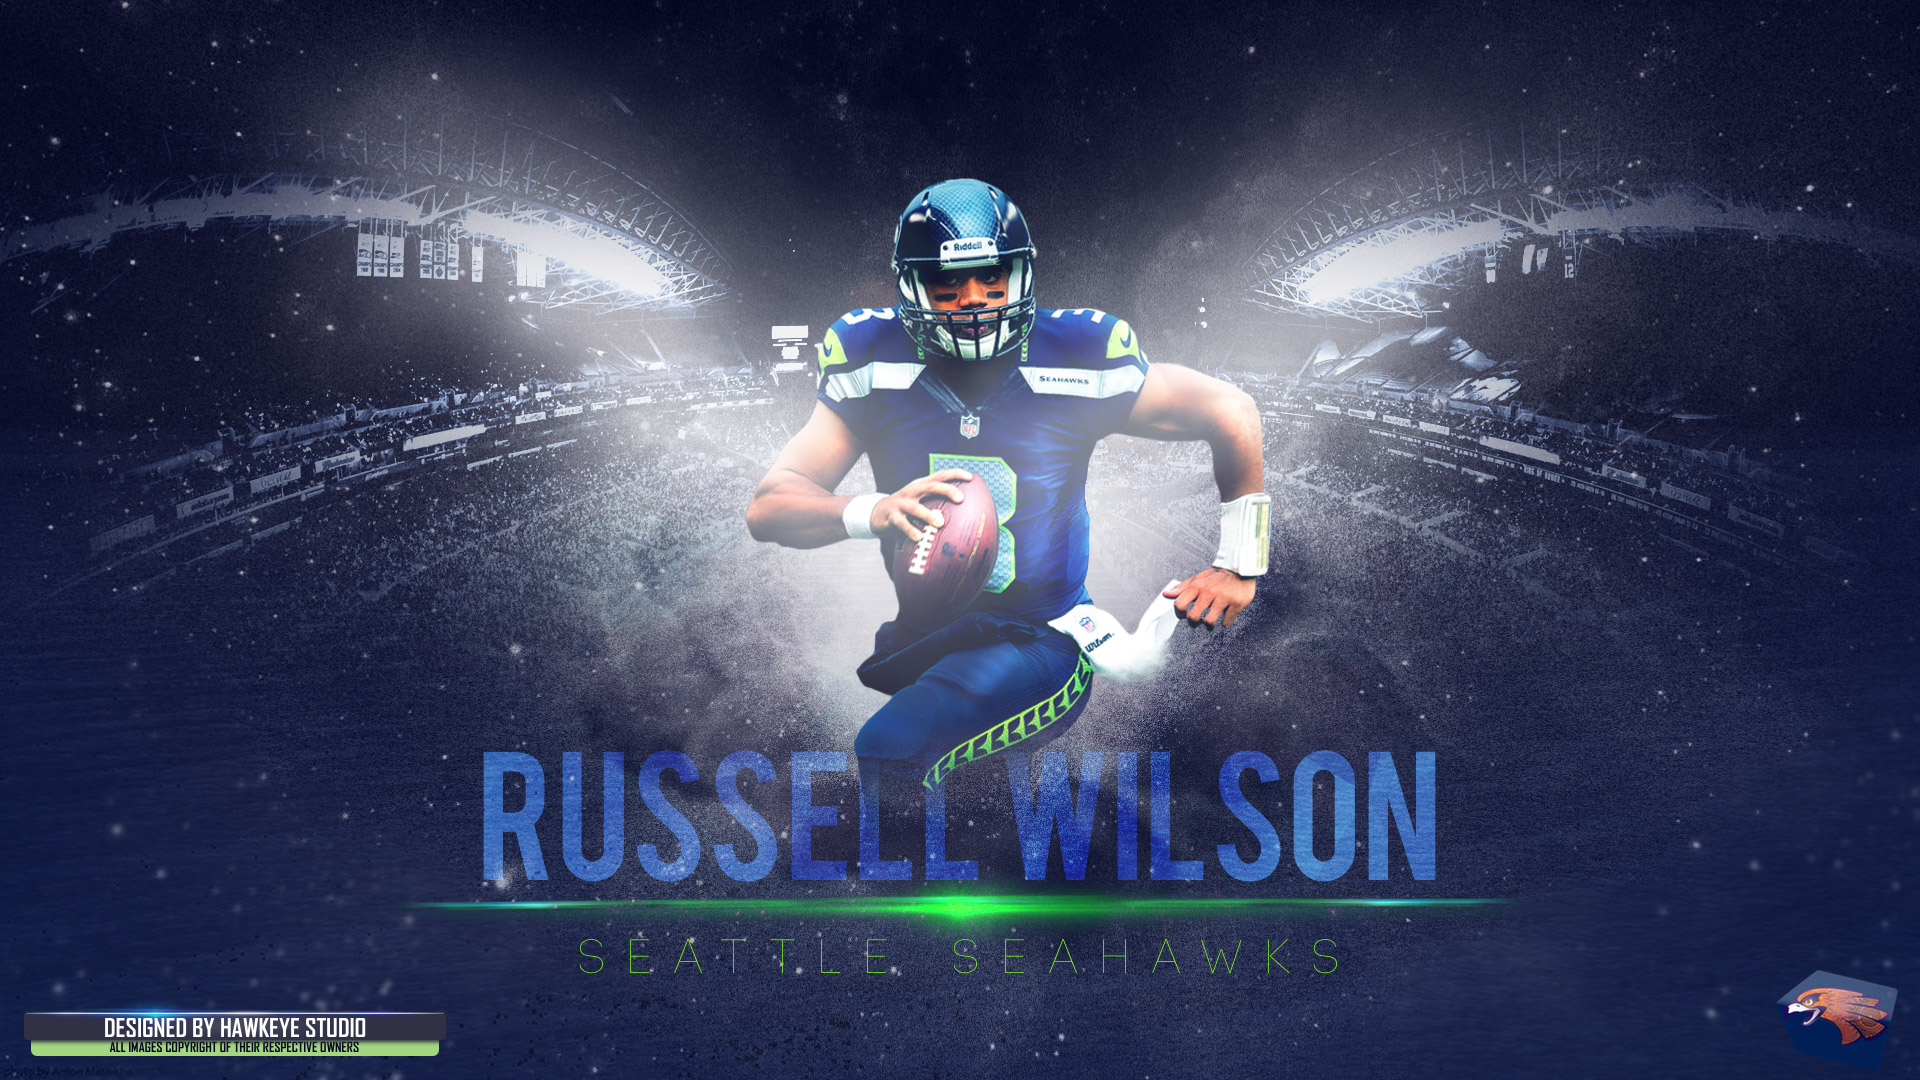 3d Wallpaper Ny Giants Russell Wilson Full Hd Wallpaper And Background Image